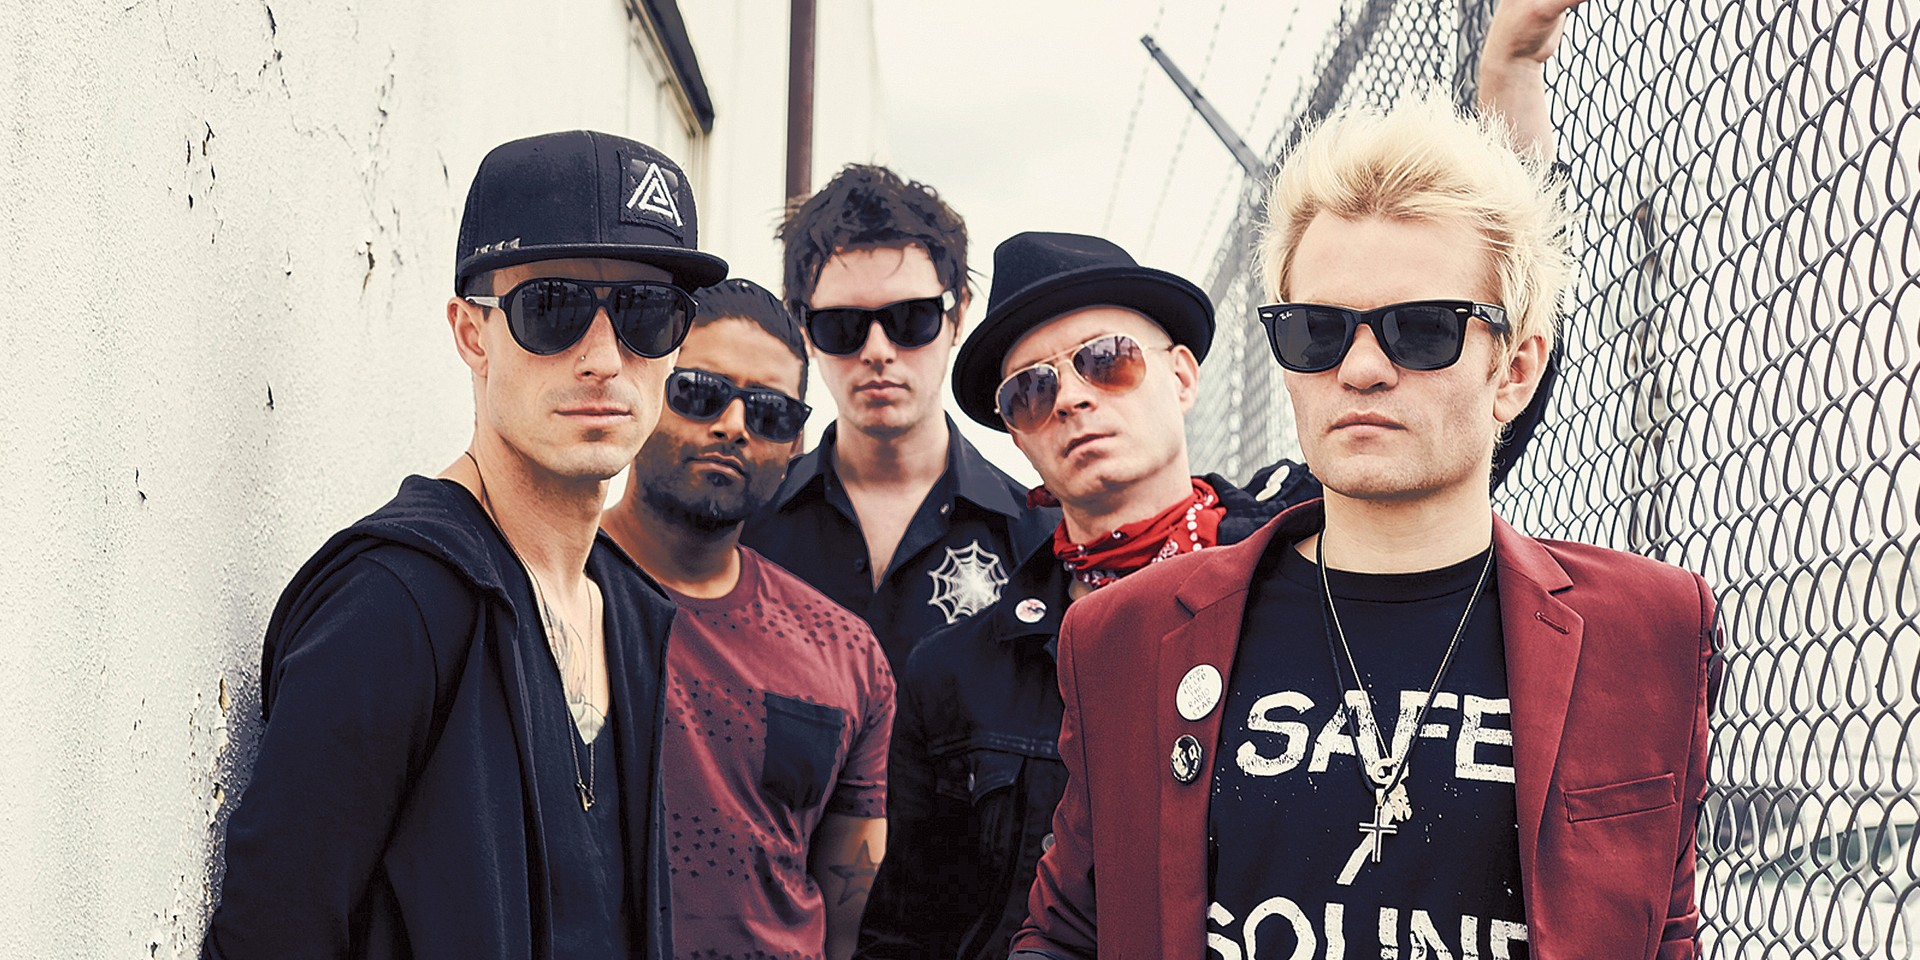 Sum 41 announces new album Order In Decline, premieres music video for new song 'Out For Blood' – watch